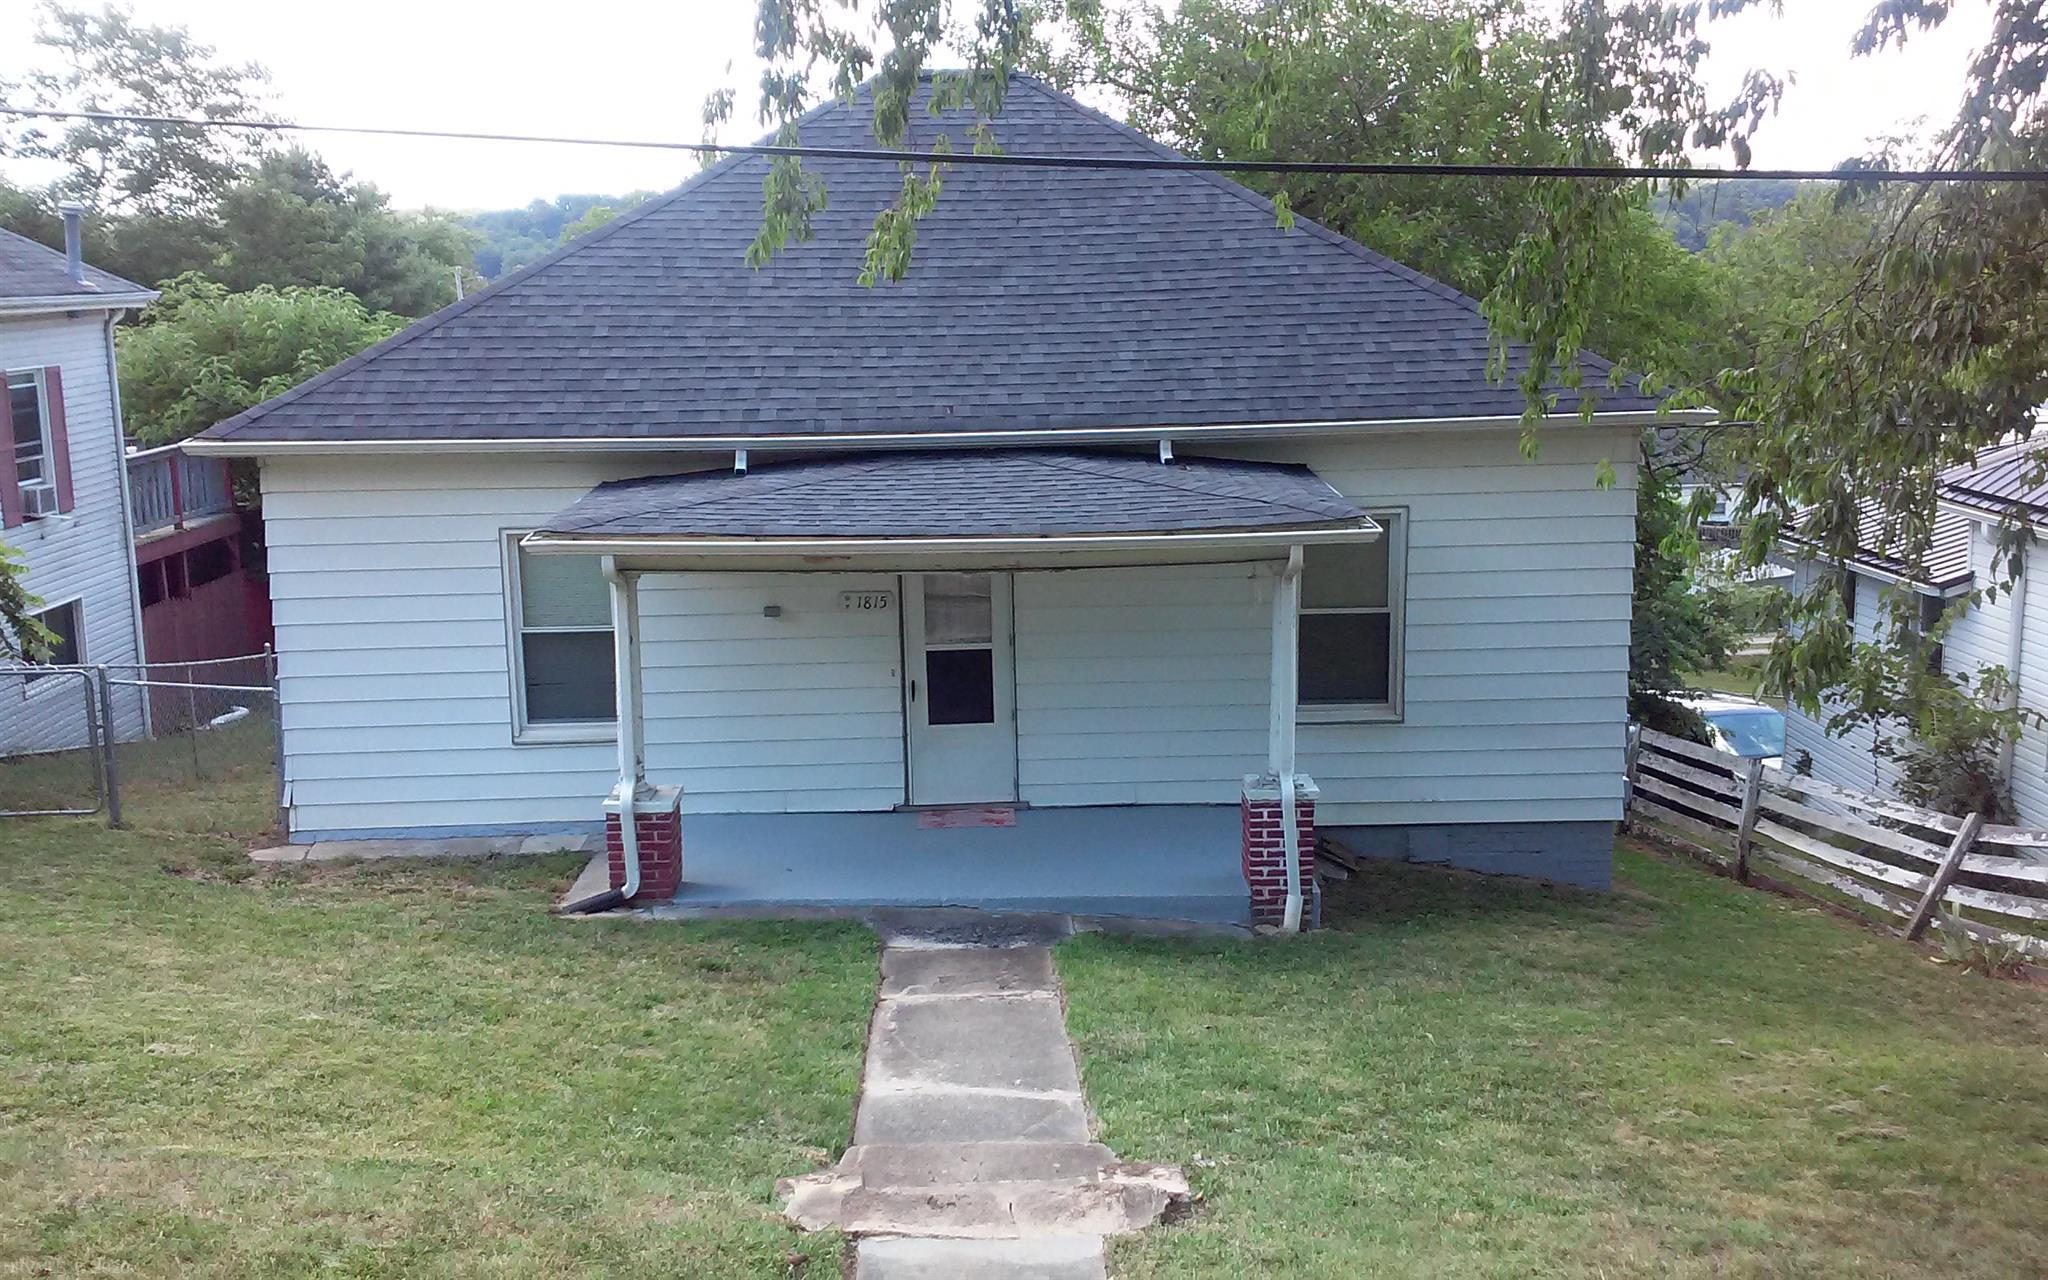 This home is a great fixer upper or flip, with replacement windows, 4 yr old roof and gutters, new paint and new electrical box and fenced in yard. With a little bit of time and money you can bring it back to life. The upstairs bathroom tub and toilet work, the sink is not connected. With 2 bathrooms a handy-person can live in it and work on it while living here. The stairs leading to basement are very sturdy but awkward at first. Basement does get water in the front right during heavy rains. Priced below assessment. Won't qualify for any Govt. loans. House sold As-Is. Inspections for discovery only. No repairs to be made by seller.